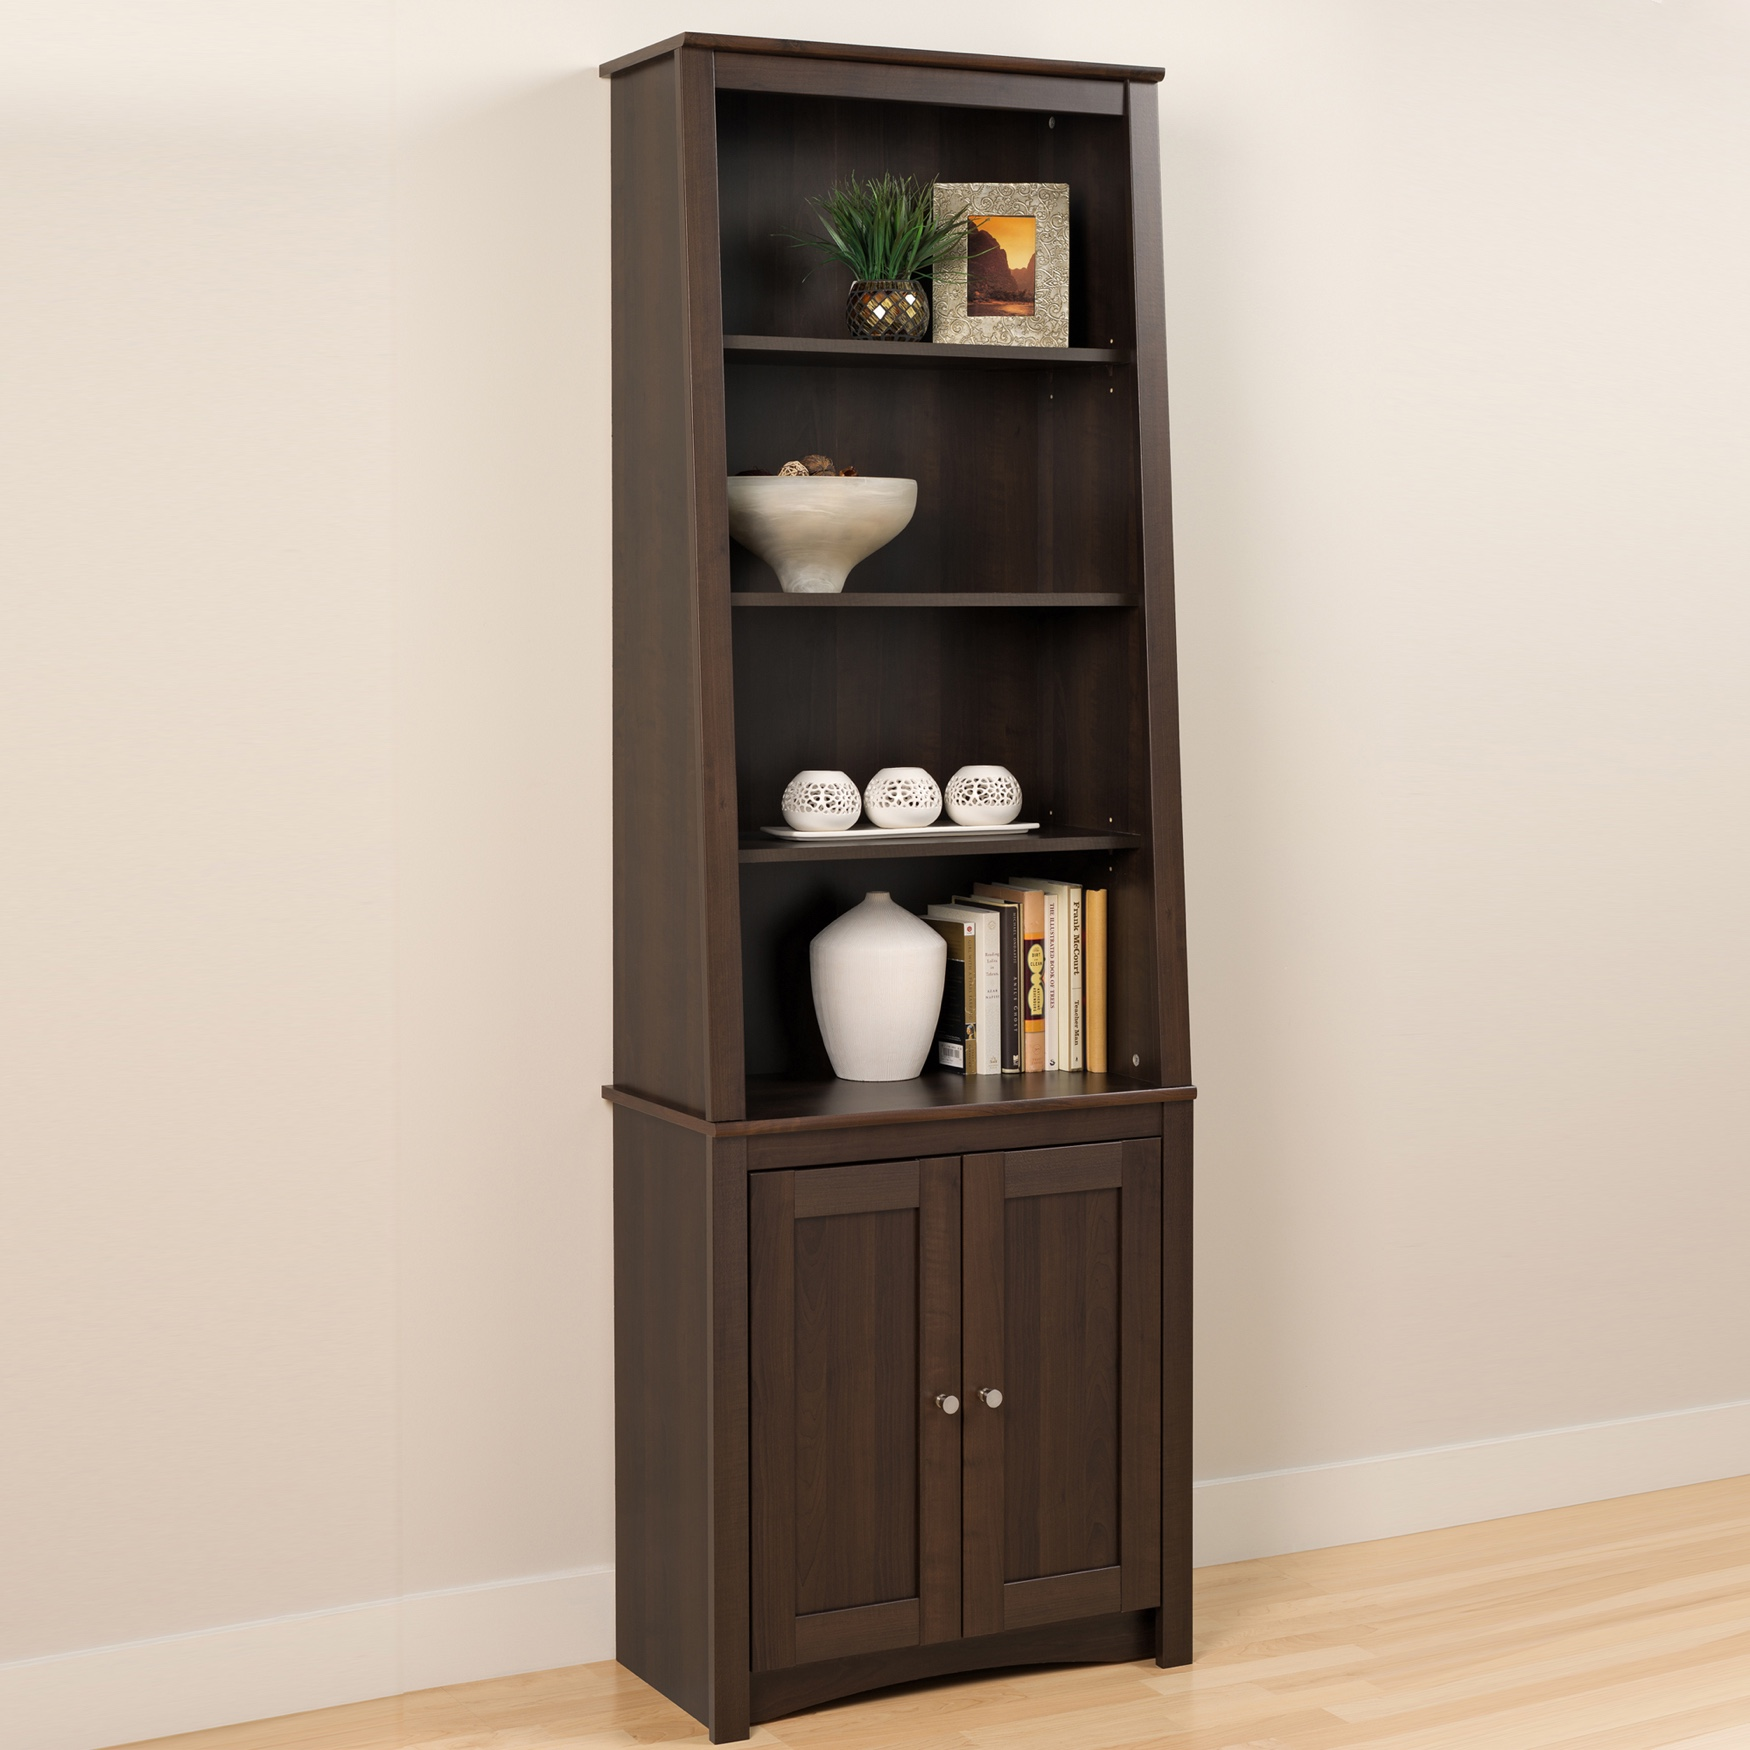 Tall Slant-Back Bookcase with 2 Shaker Doors, Espresso, EXPRESSO